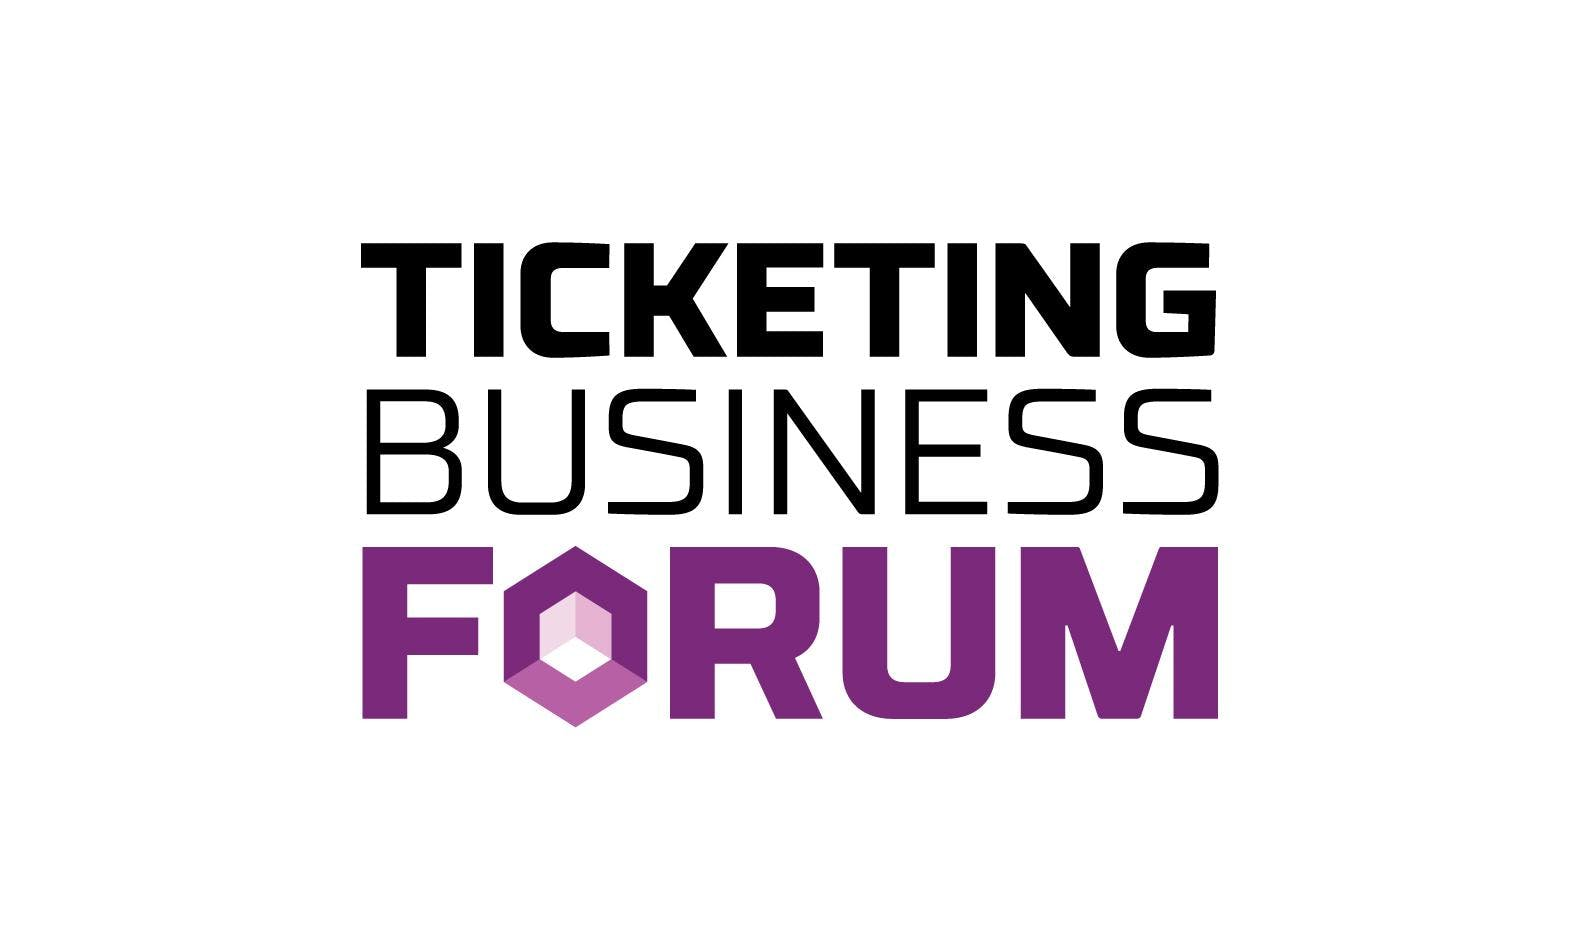 Rencontrez Weezevent au Ticketing Business Forum de Manchester